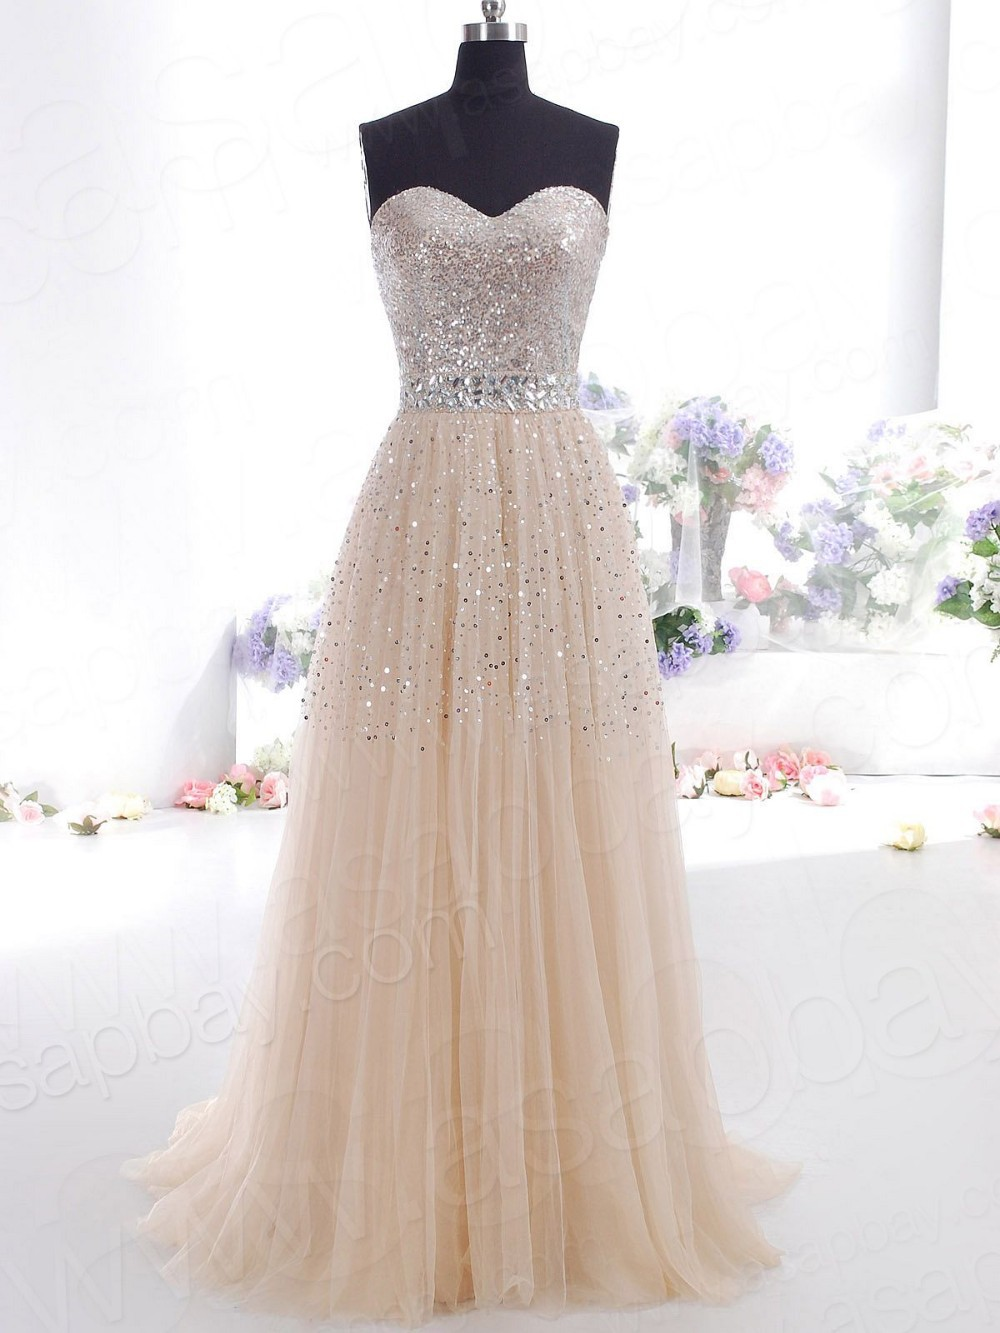 Champagne long prom dresses sweetheart tulle beaded evening party evening gown size 4 6 8 10 12 14 16/lace up